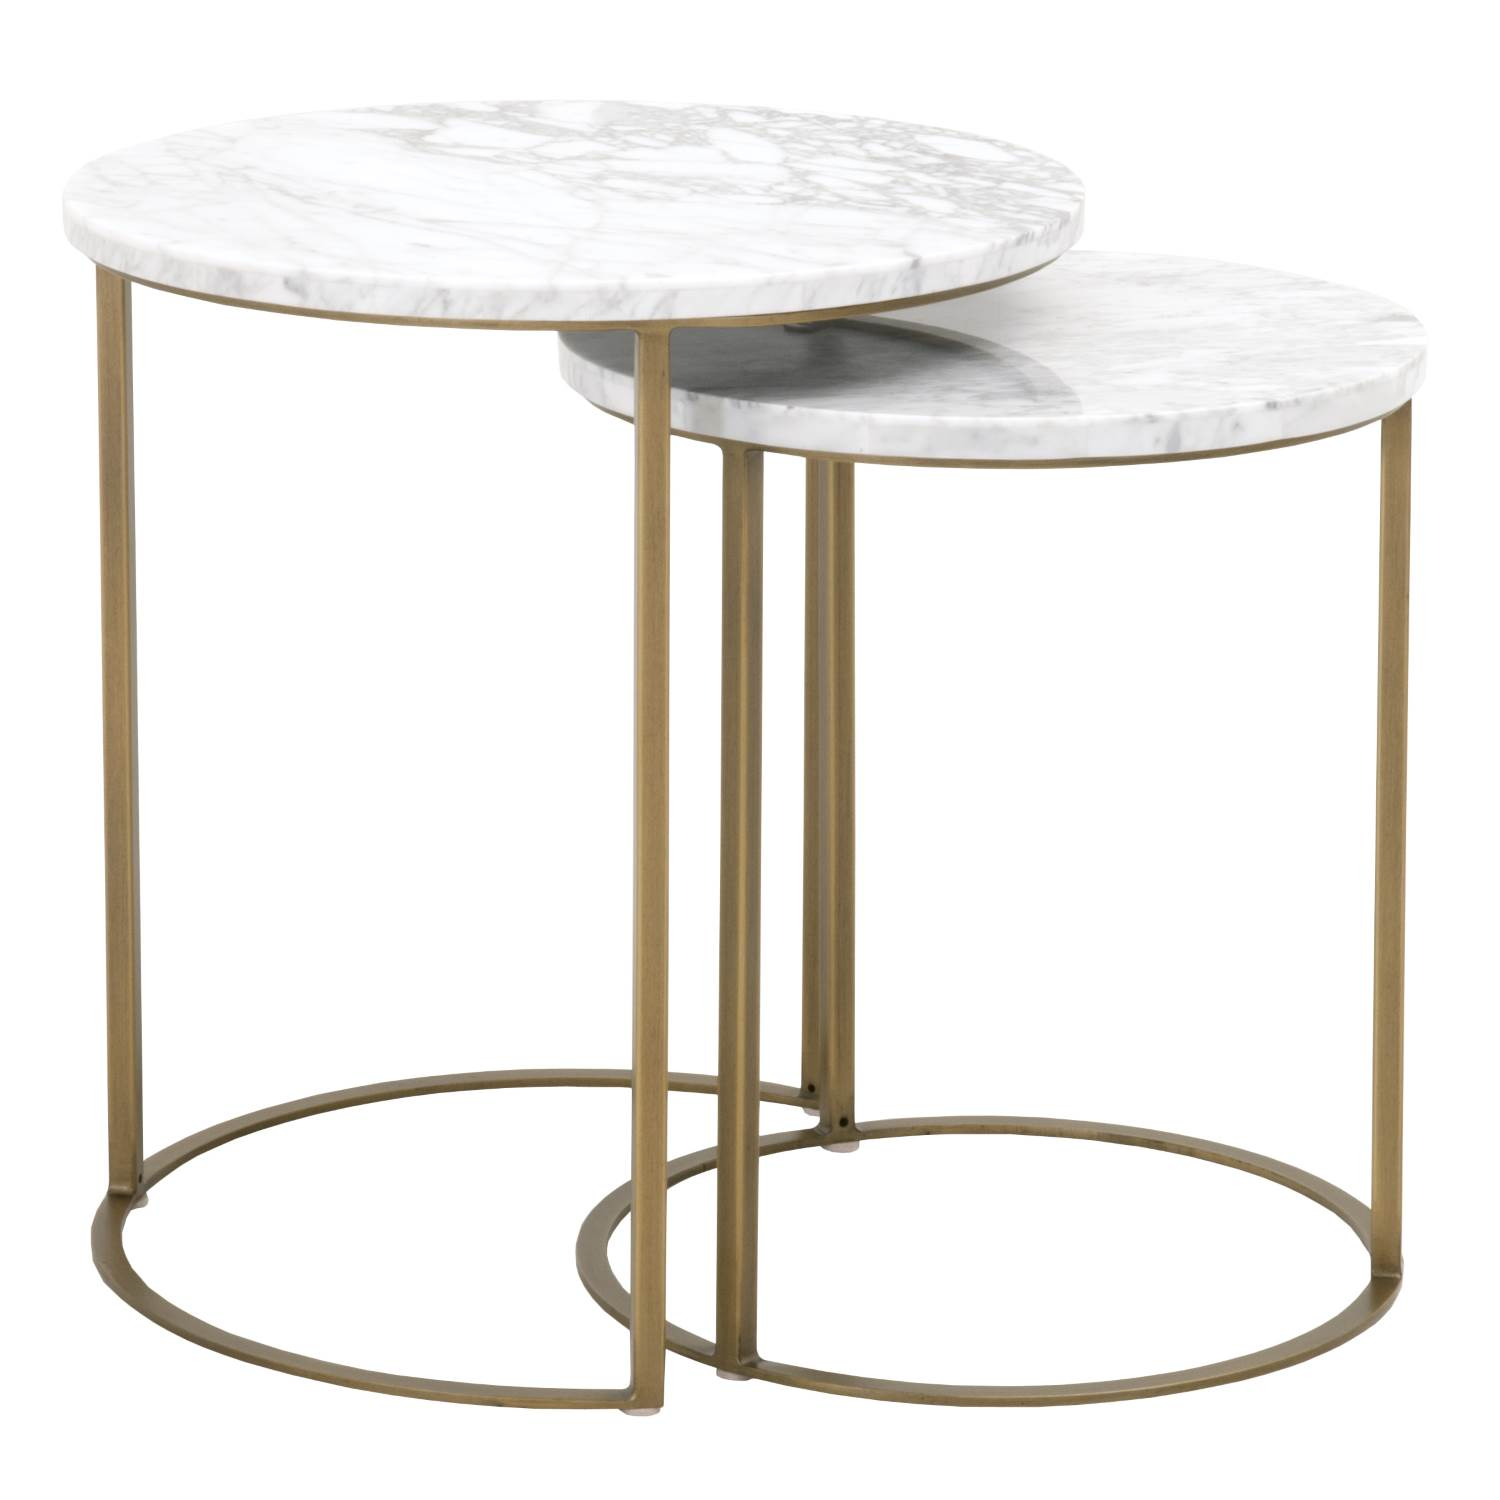 orient express carrera brushed gold white round nesting accent table oef click enlarge tall skinny side mirrored cube metal hairpin legs narrow sofa acrylic coffee tray inch cloth